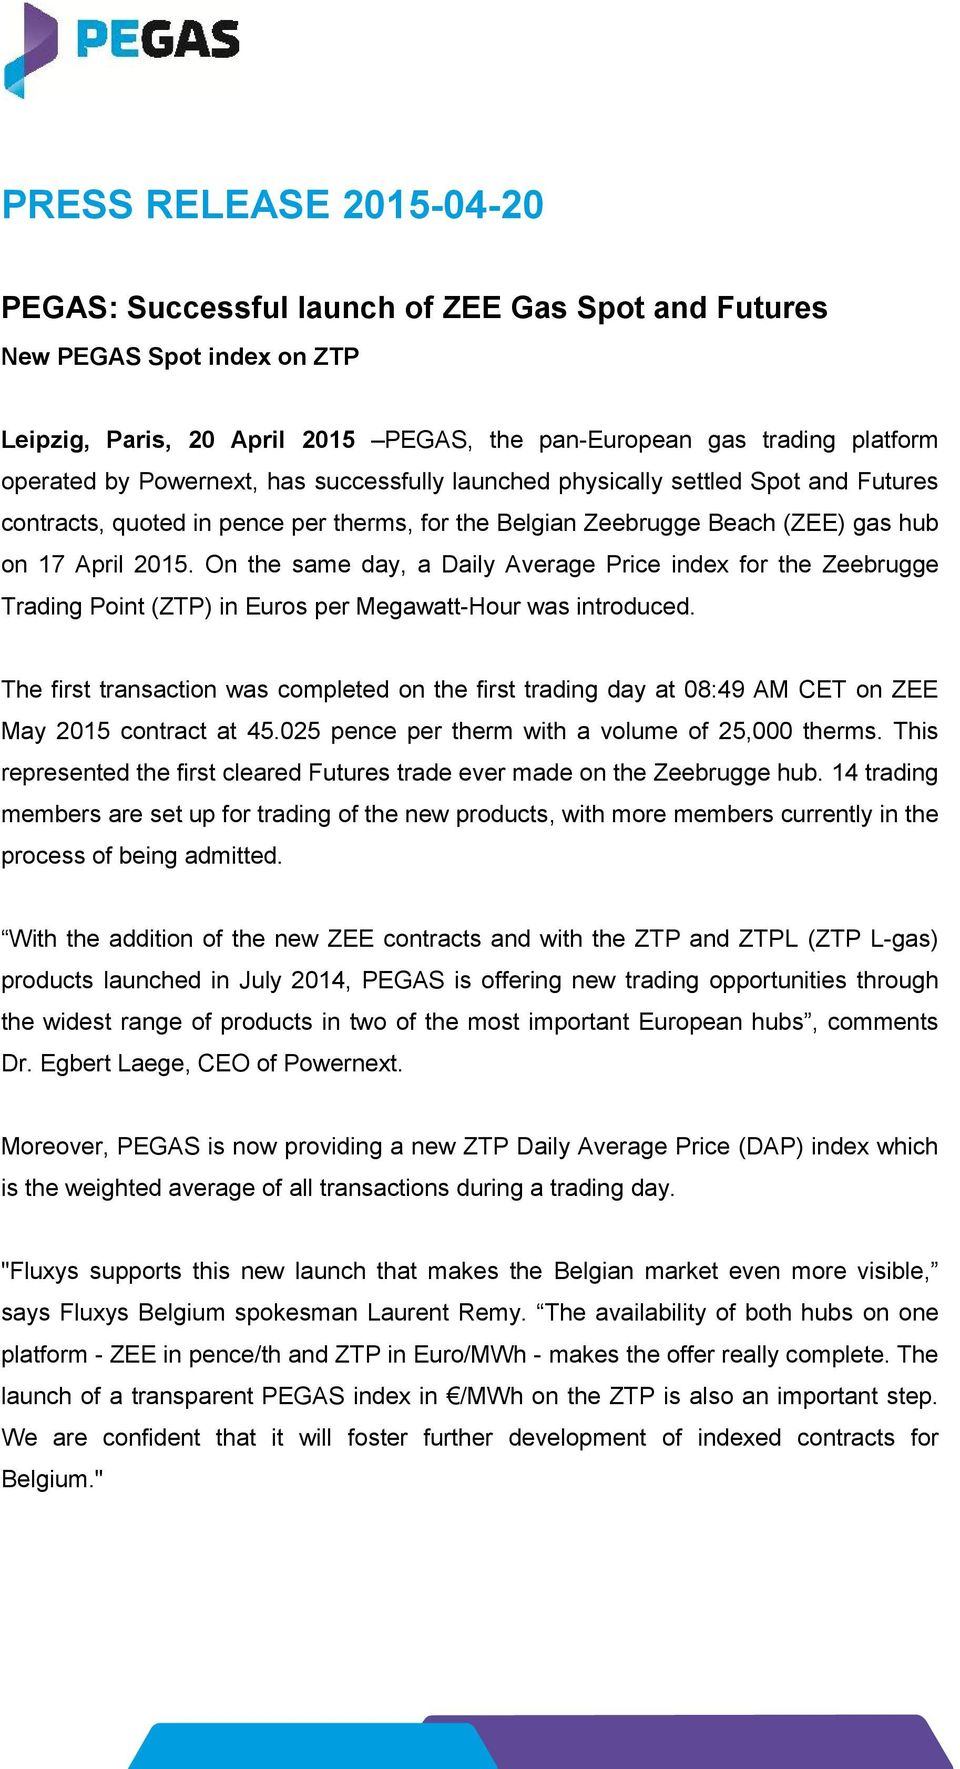 On the same day, a Daily Average Price index for the Zeebrugge Trading Point (ZTP) in Euros per Megawatt-Hour was introduced.